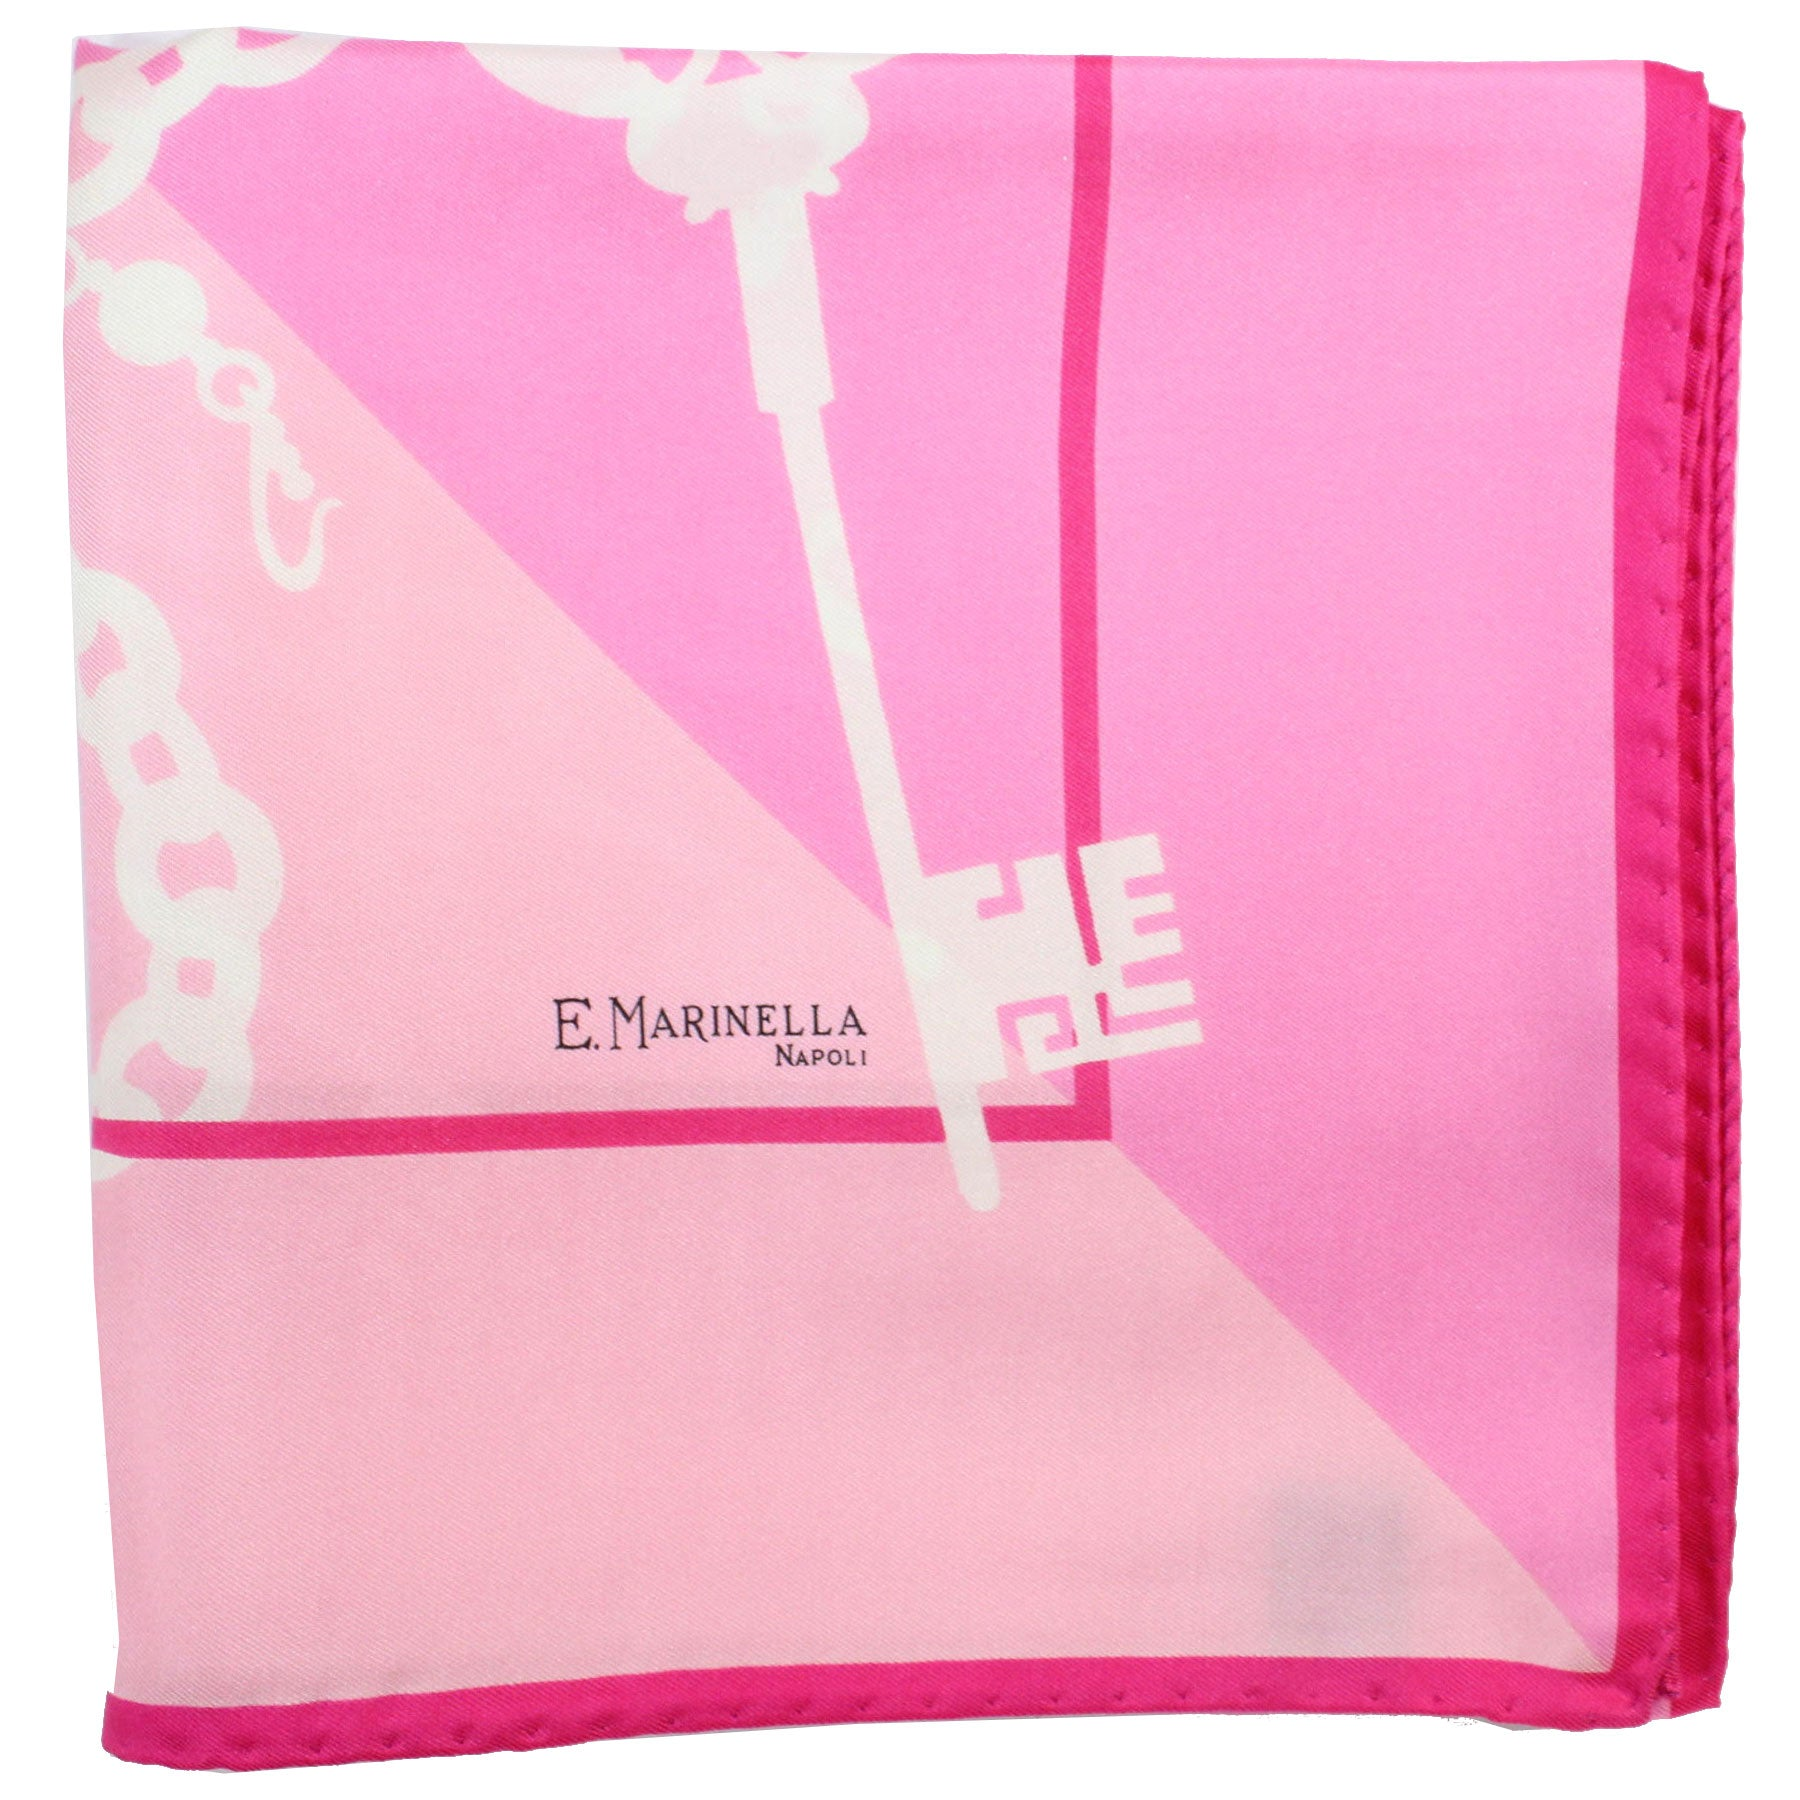 E. Marinella Scarf Pink White Key Design - Large Twill Silk Square Foulard